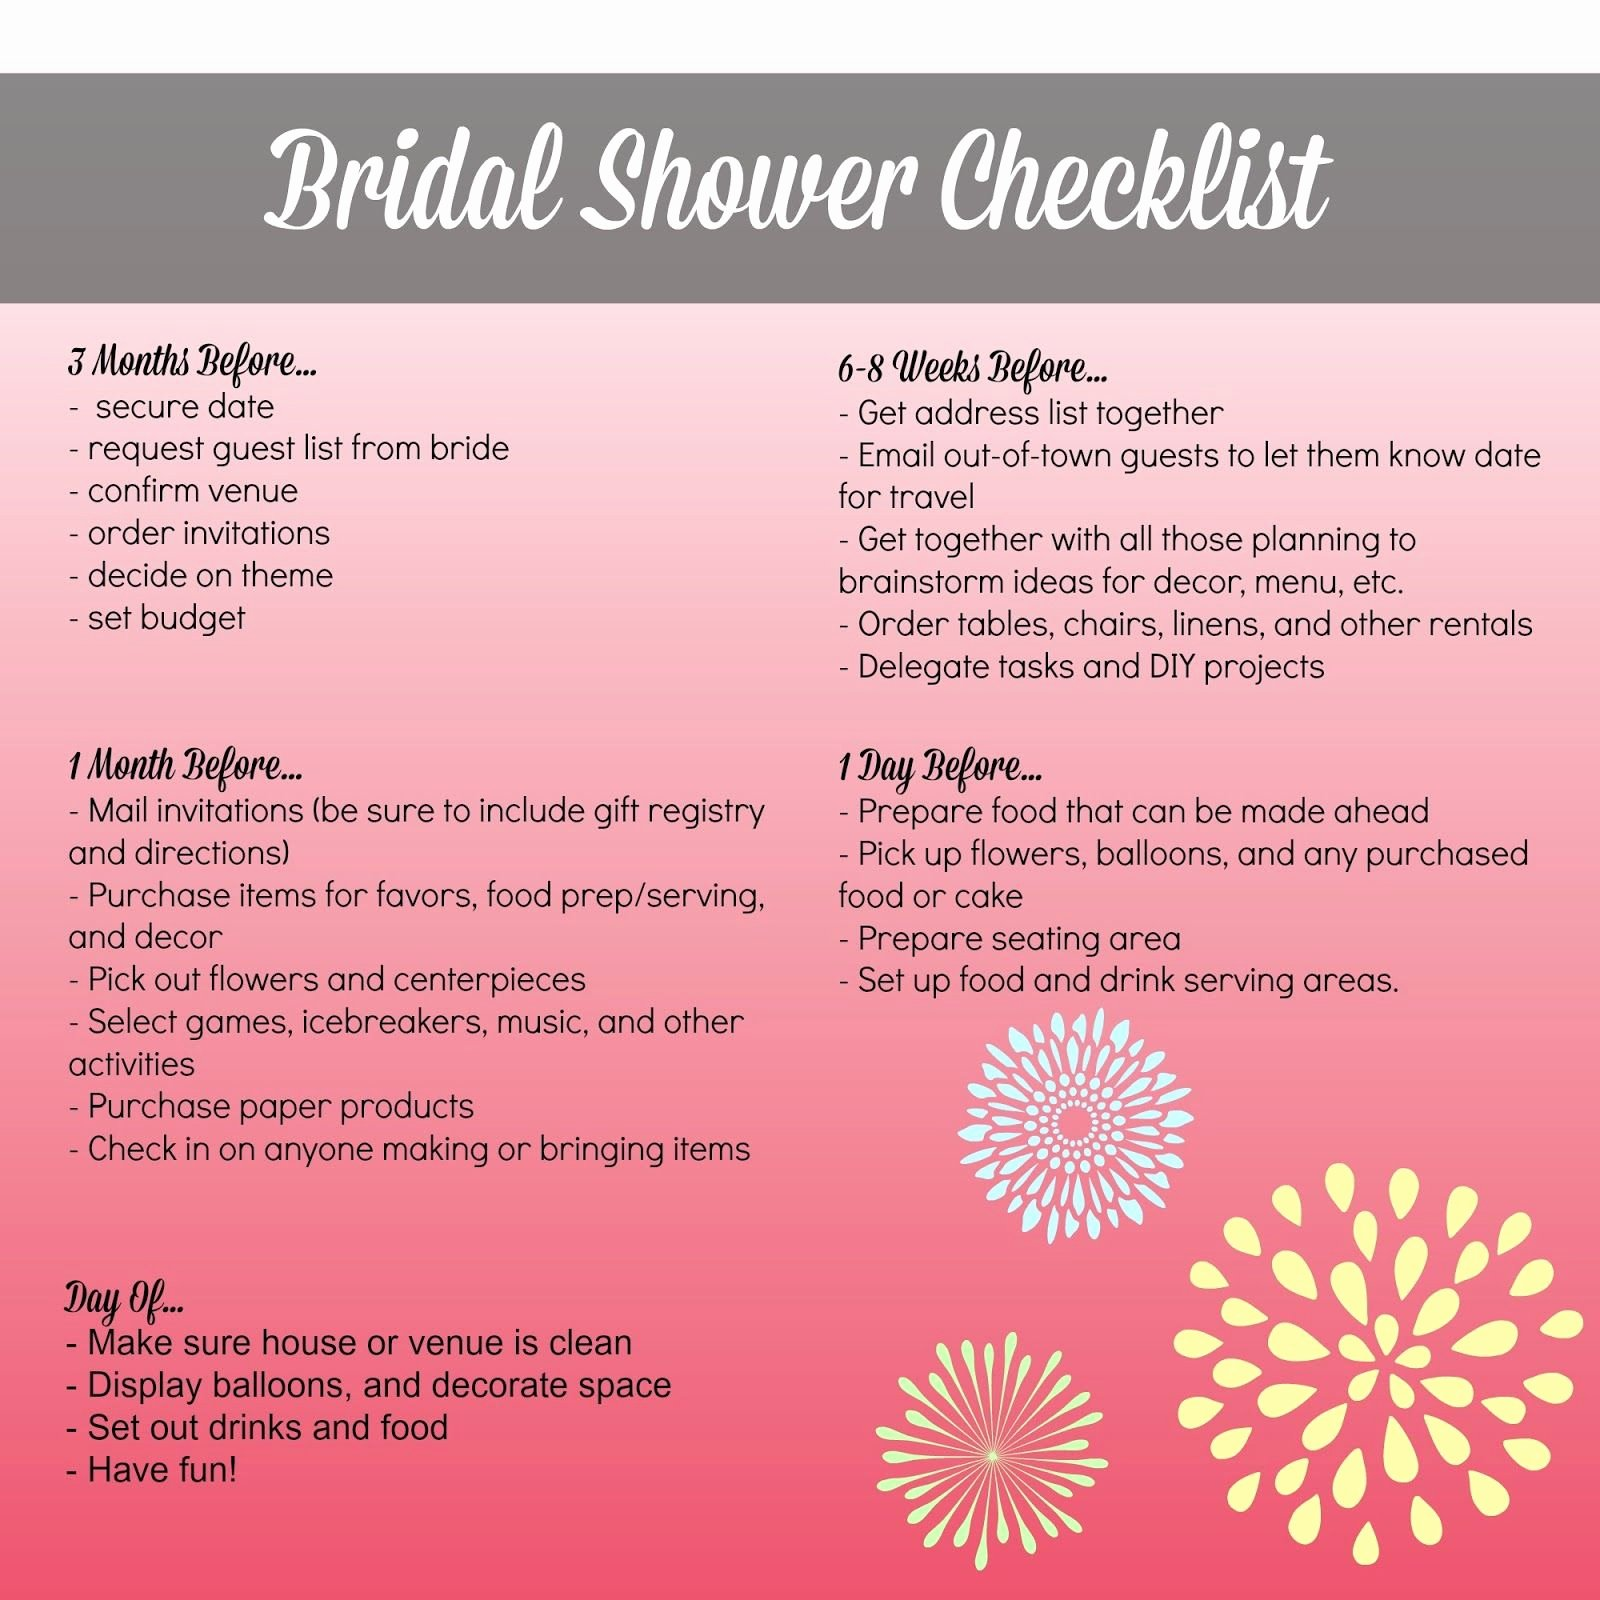 Bridal Shower Checklist Printable Unique Bridal Shower Planning Checklist